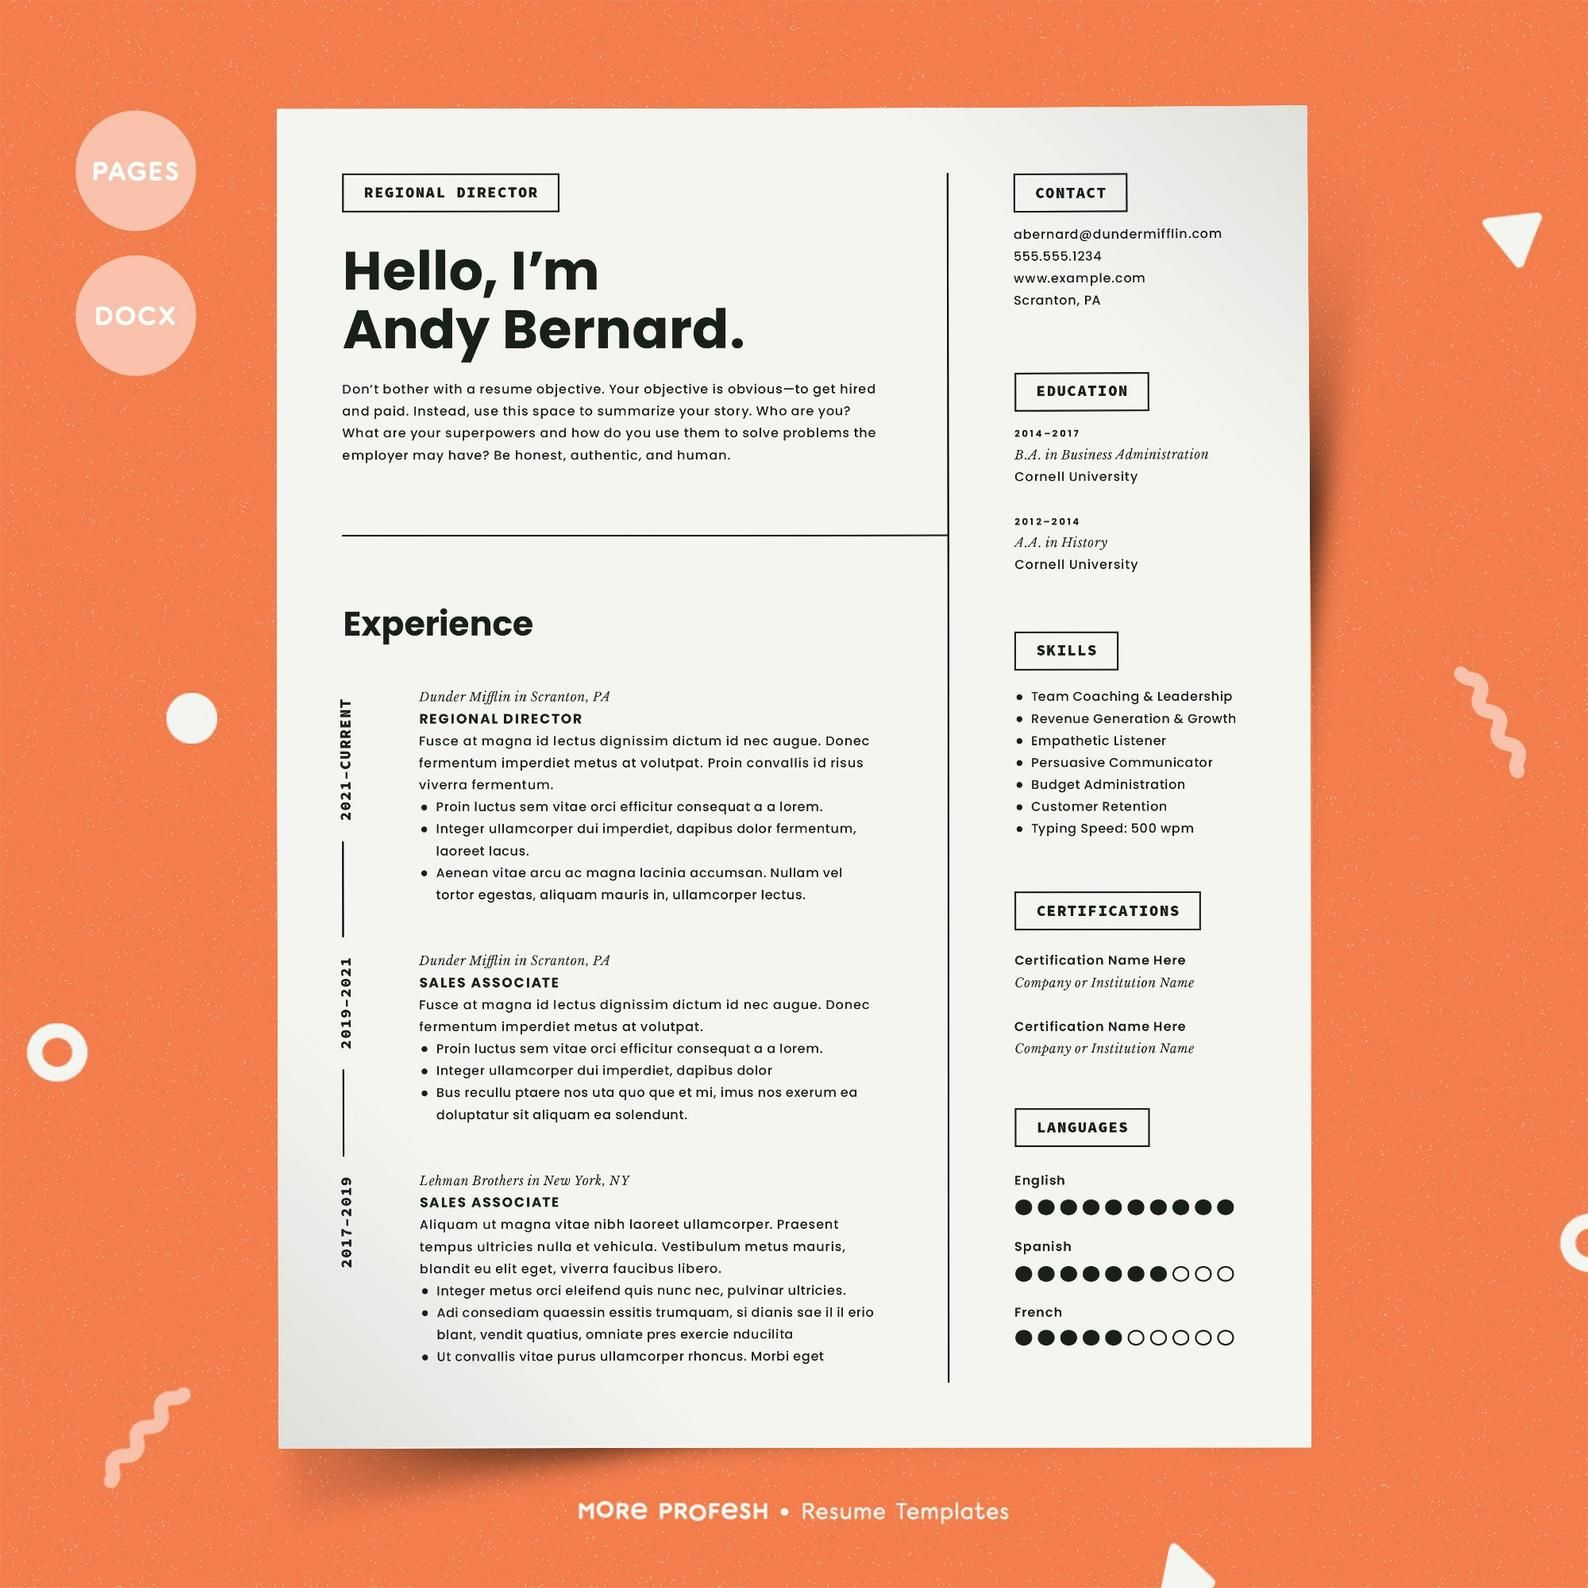 Resume for Mac | Pages Resume | Resume for Pages | CV Template Mac | Simple Resume Template | Minimalist Resume | Resume Template Mac